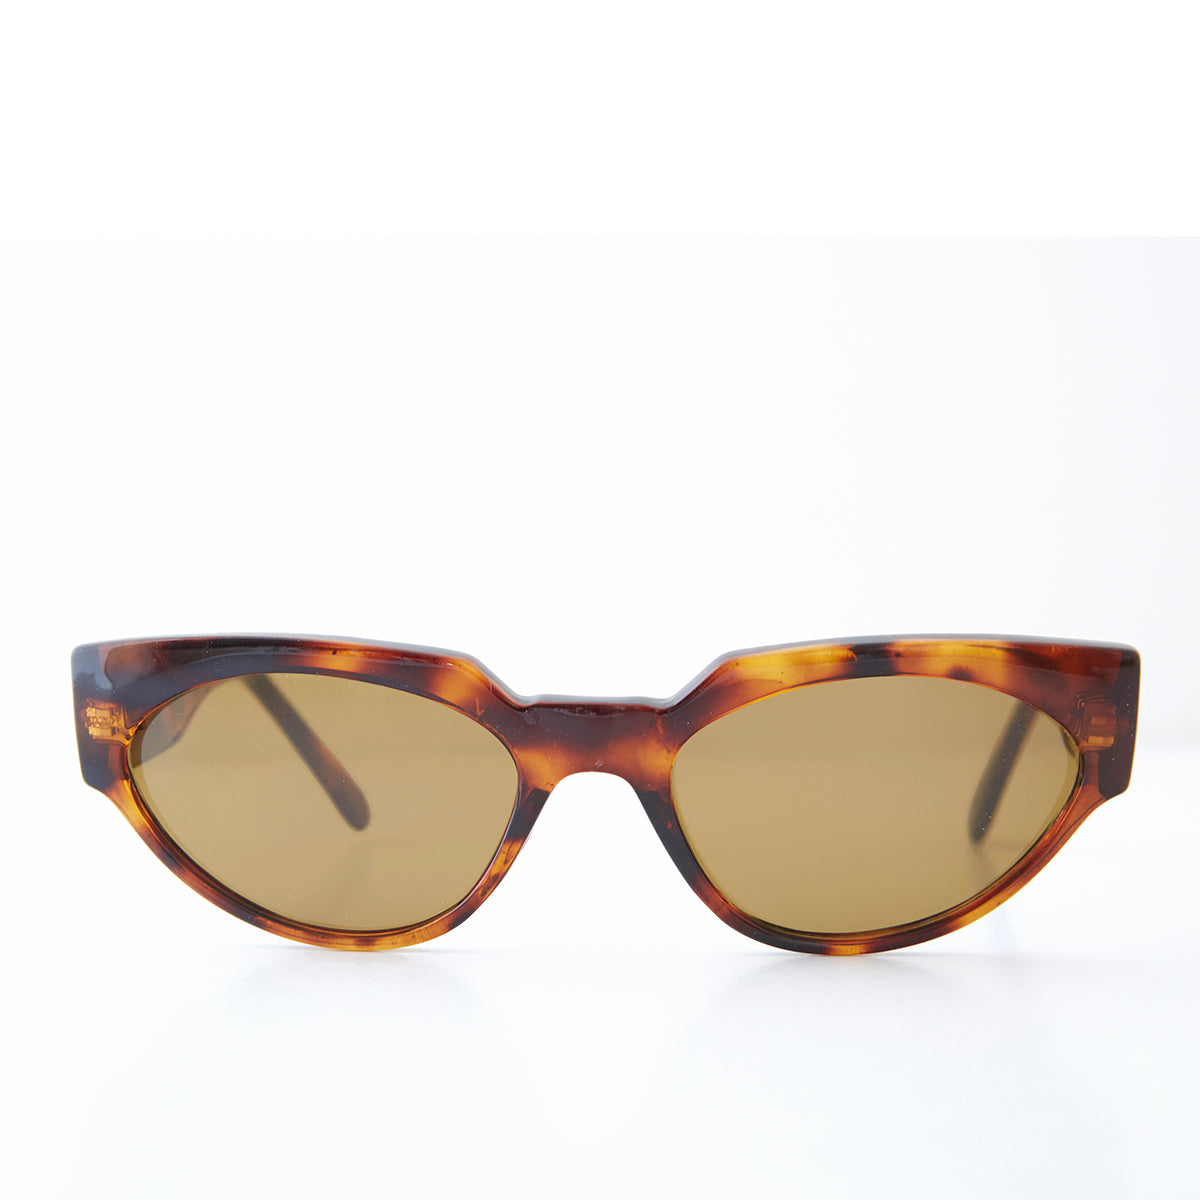 Women's Bold Angular Cat Eye Vintage Sunglasses -  Ellie